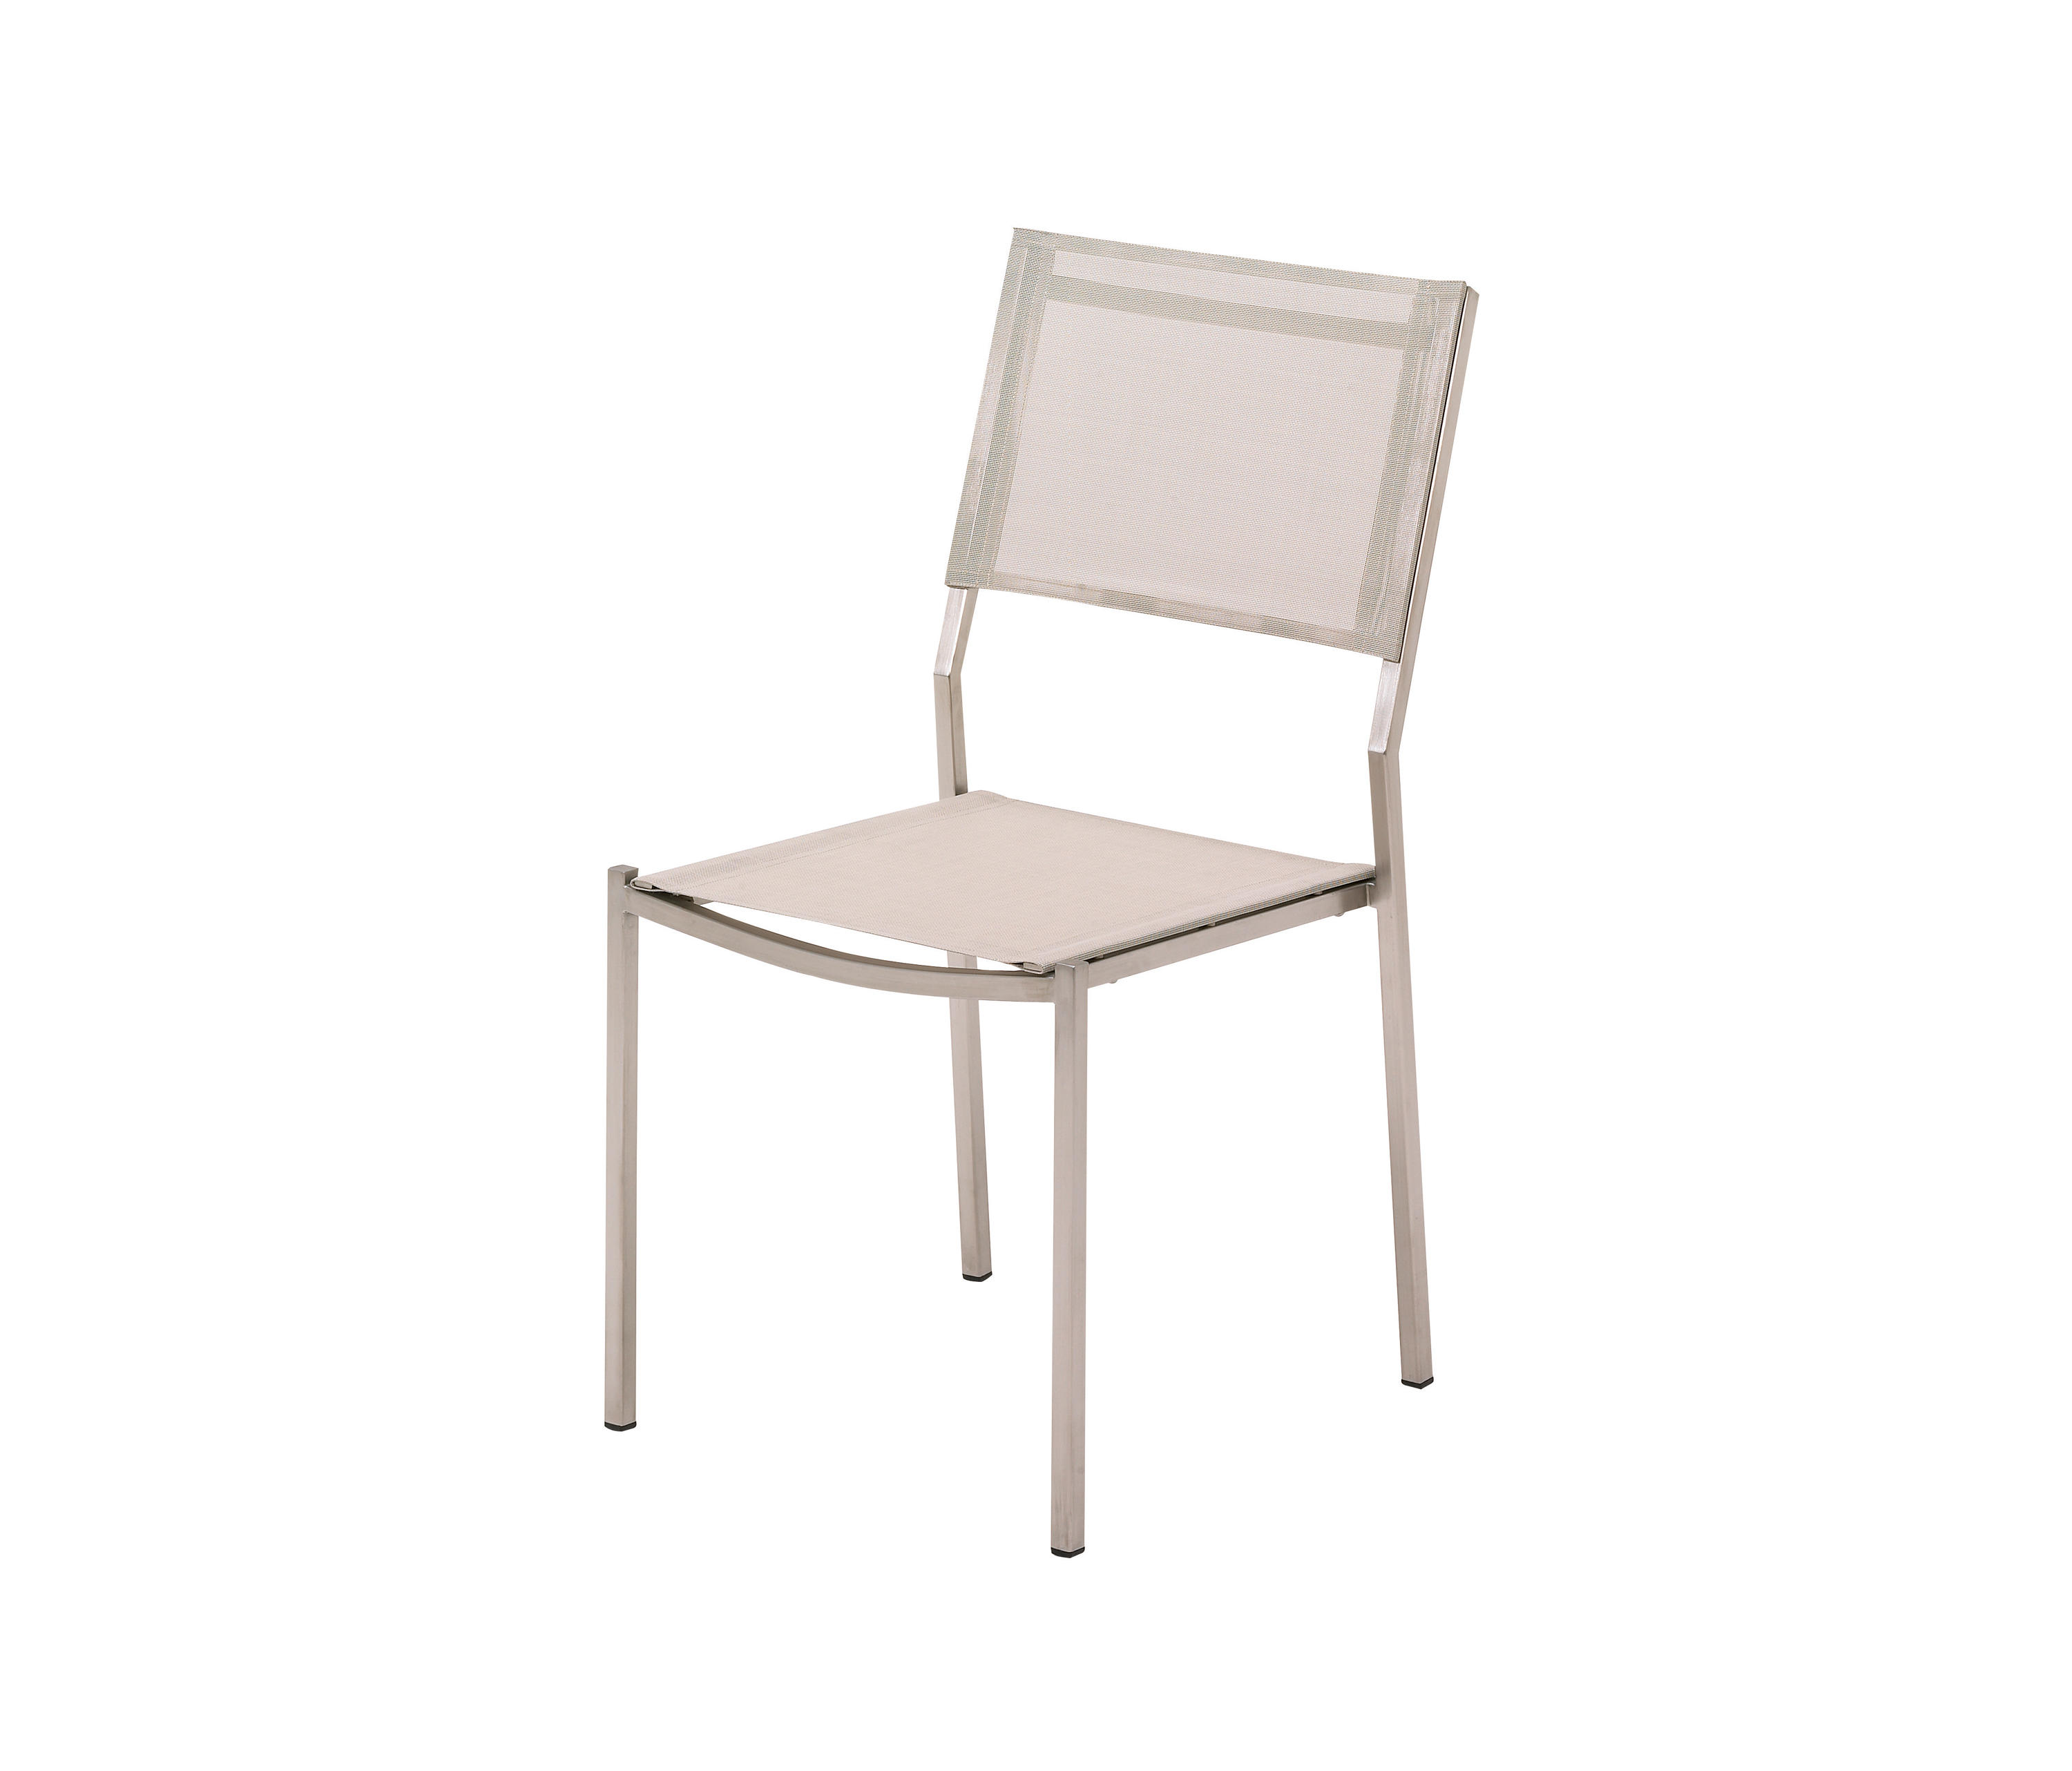 ... Vigo Stacking Chair By Gloster Furniture GmbH | Chairs ...